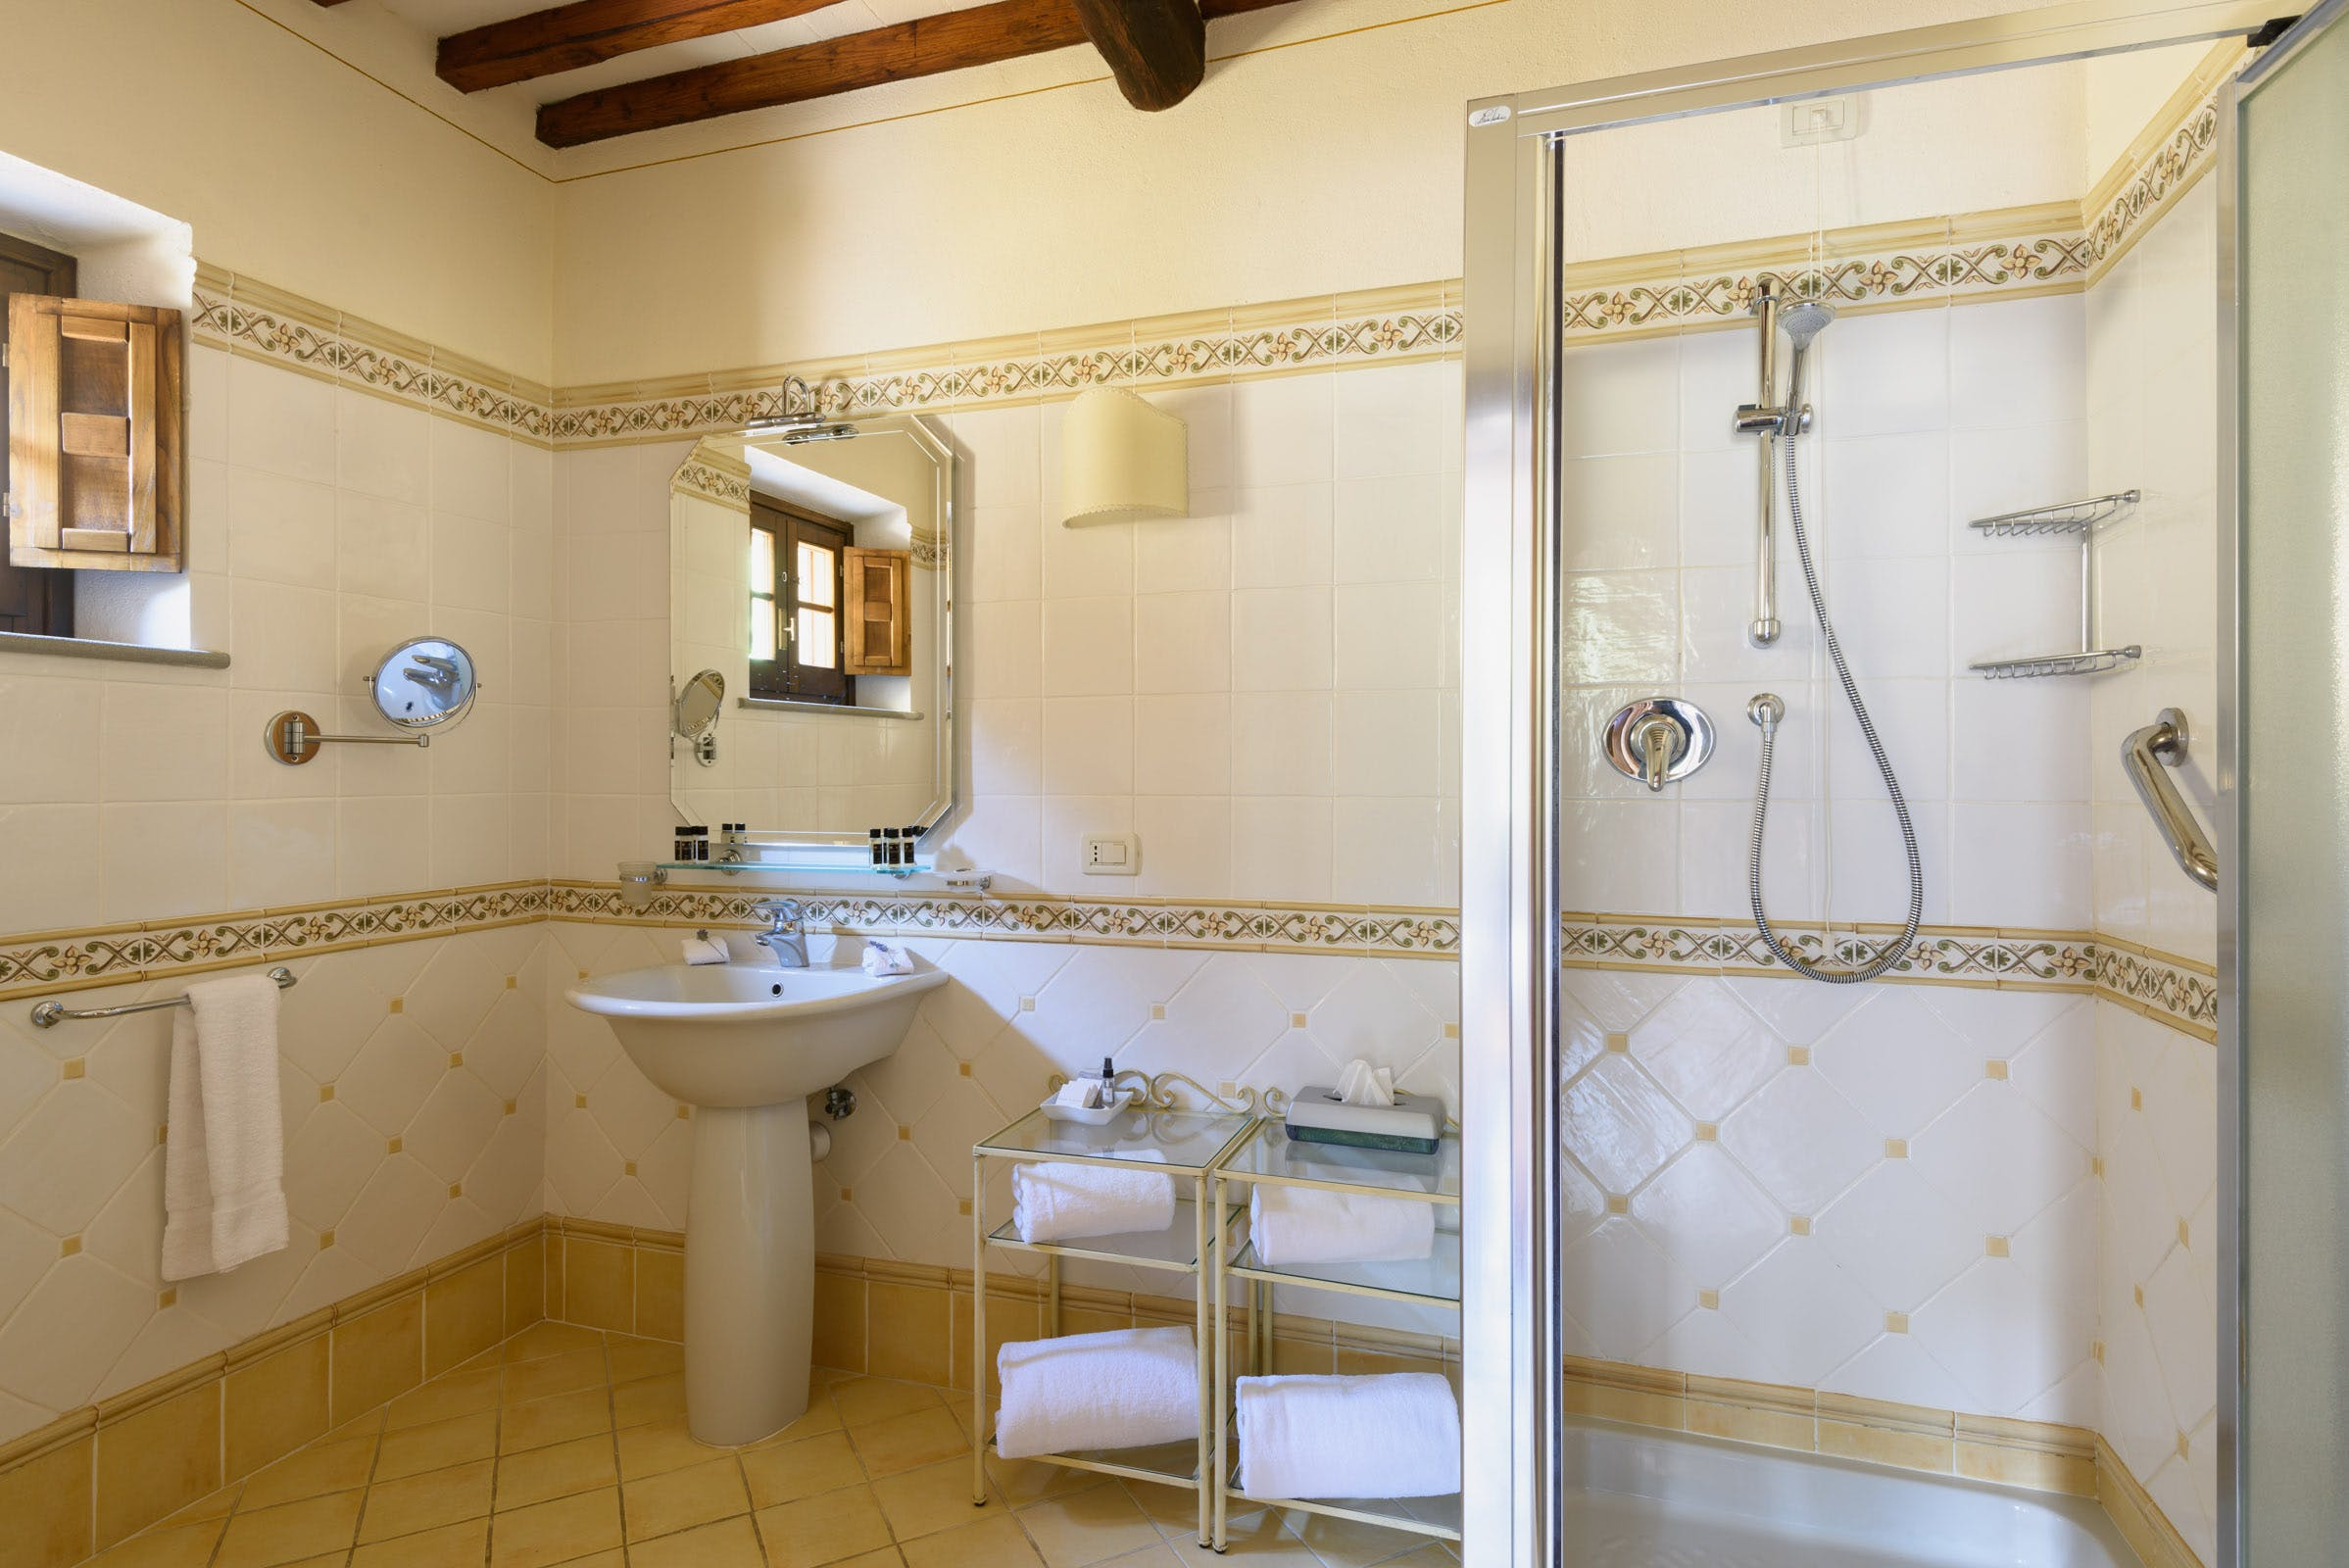 Casa Portagioia Tuscany bed and breakfast , Andreoccci bathroom